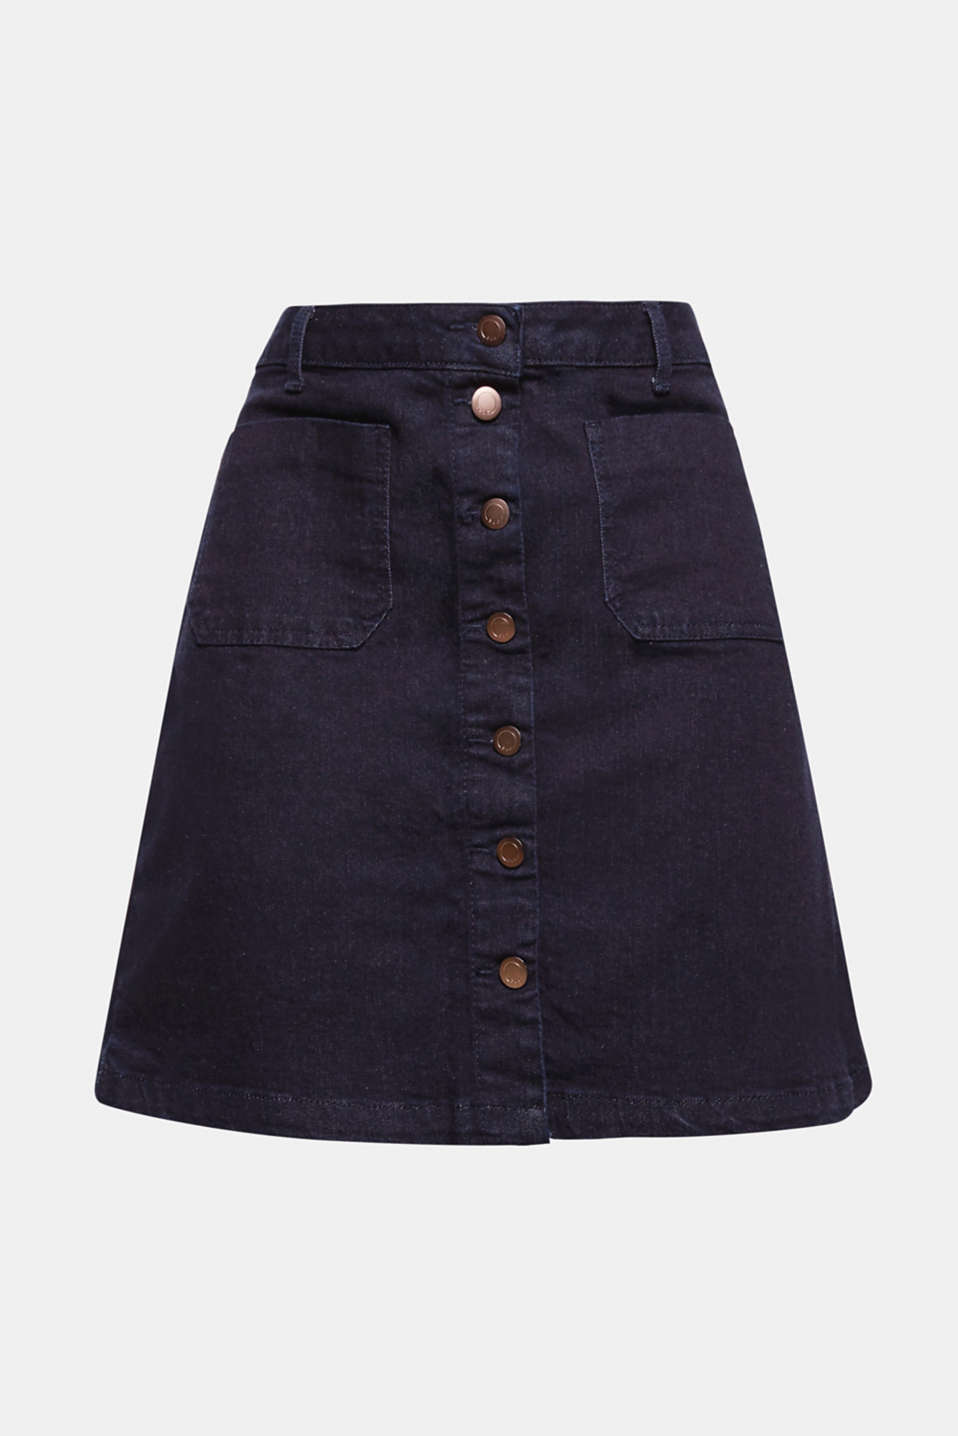 The patch front pockets and trendy button placket give this flared dark denim skirt its stylish, retro look!